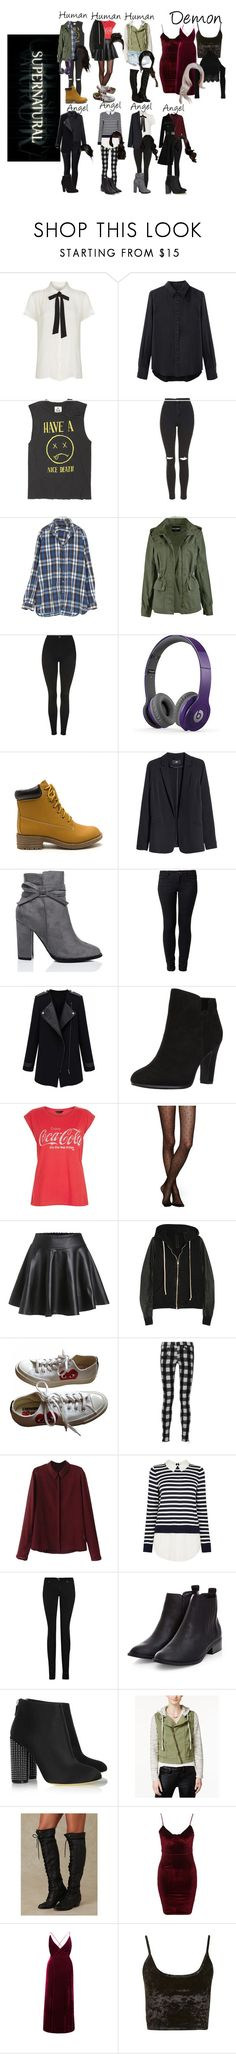 """""""Me in Supernatural"""" by demiwitch-of-mischief ❤ liked on Polyvore featuring Maje, rag & bone, Topshop, Beats by Dr. Dre, H&M, SpyLoveBuy, ONLY, Sam Edelman, New Look and Kate Spade"""